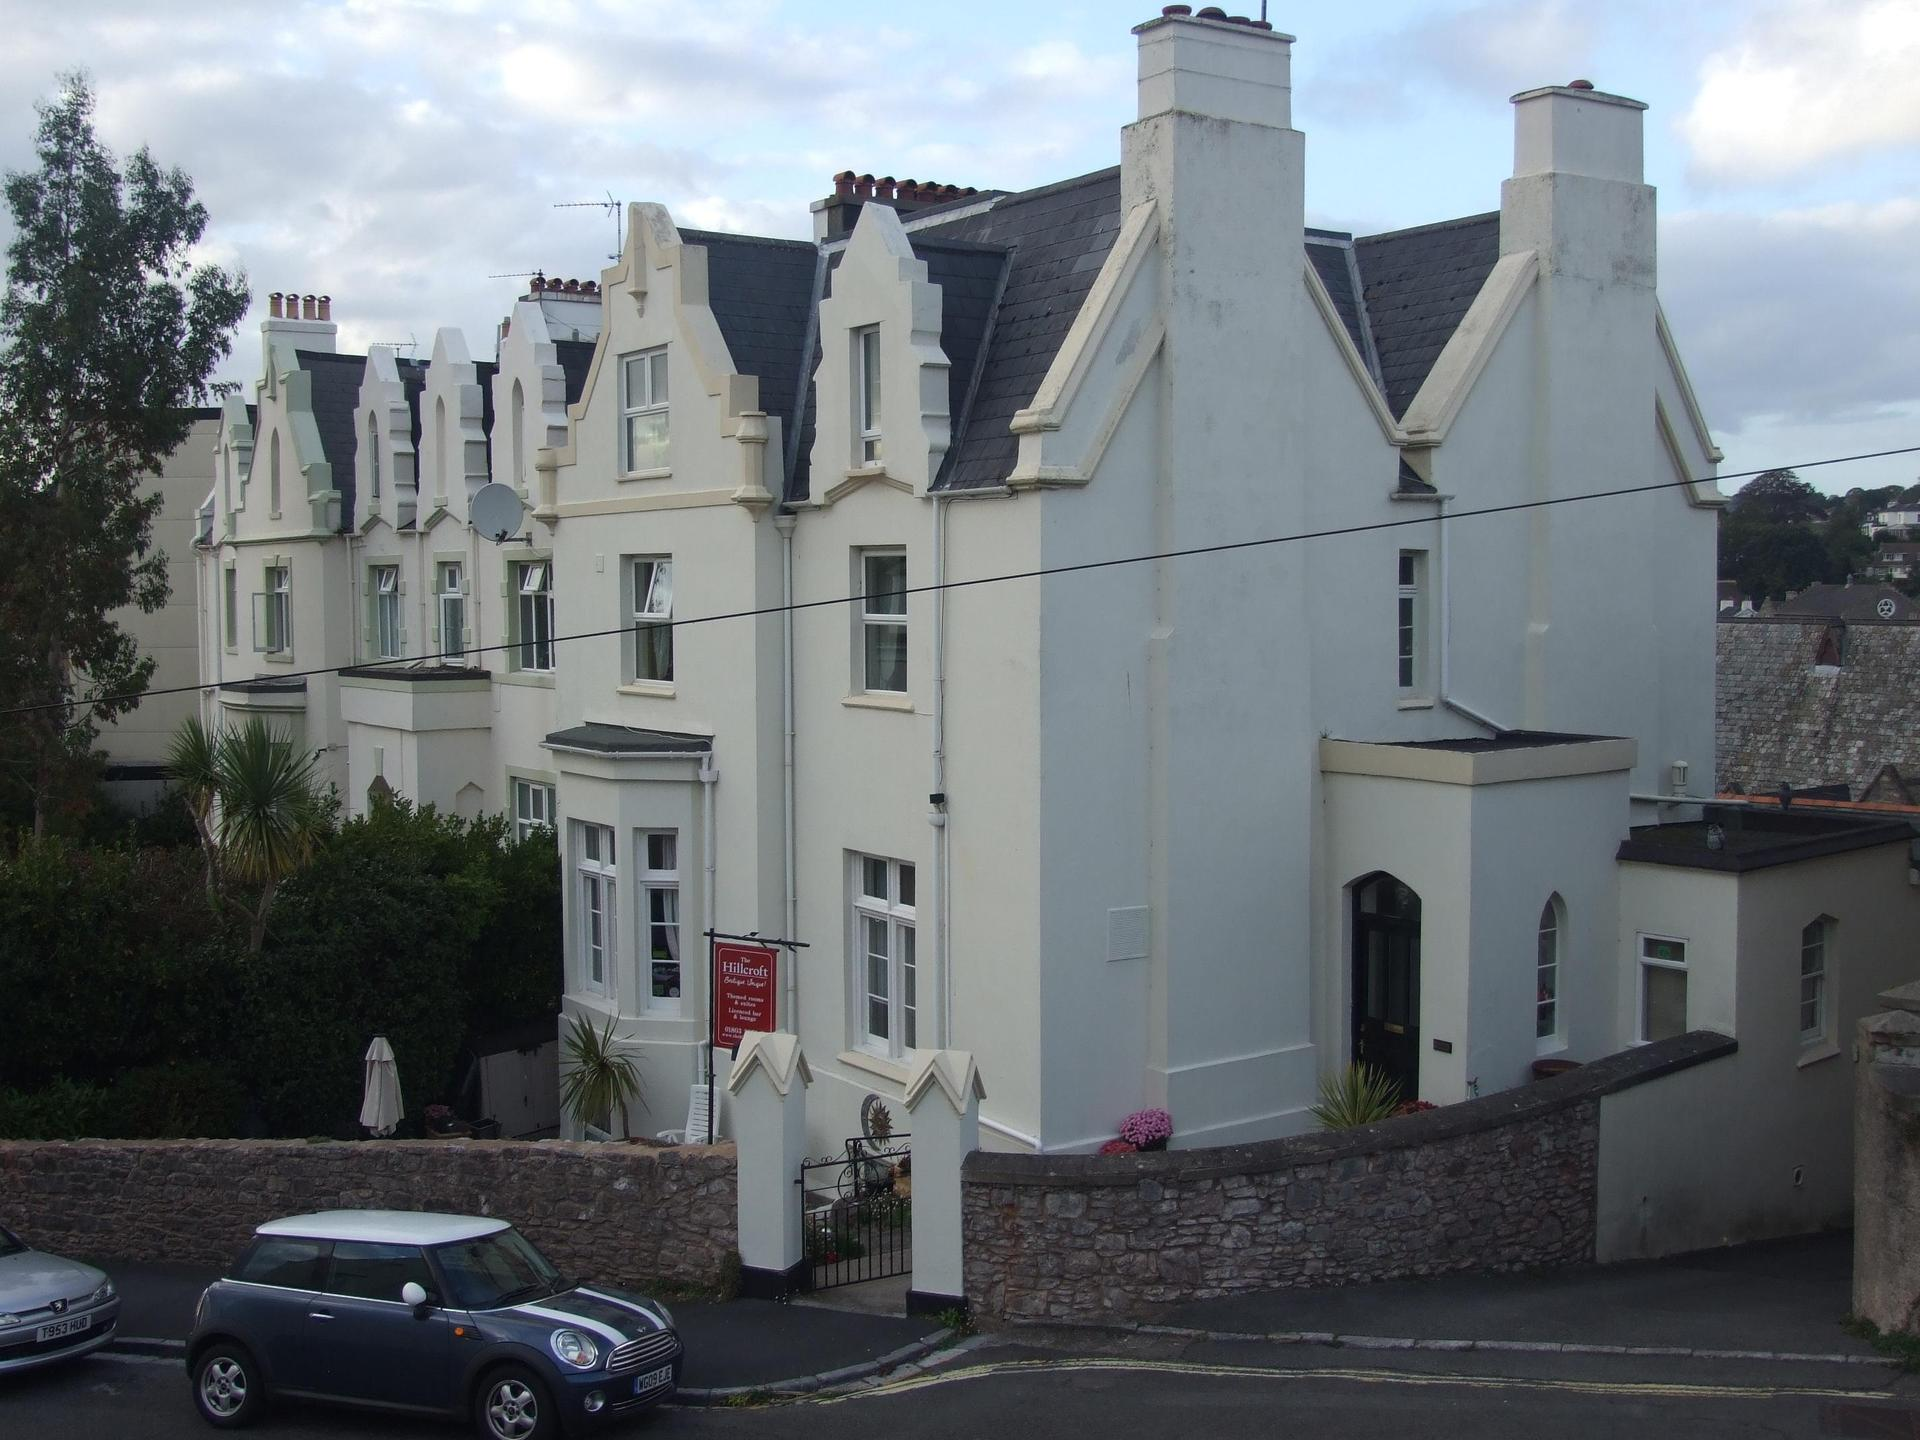 The Hillcroft in Torquay